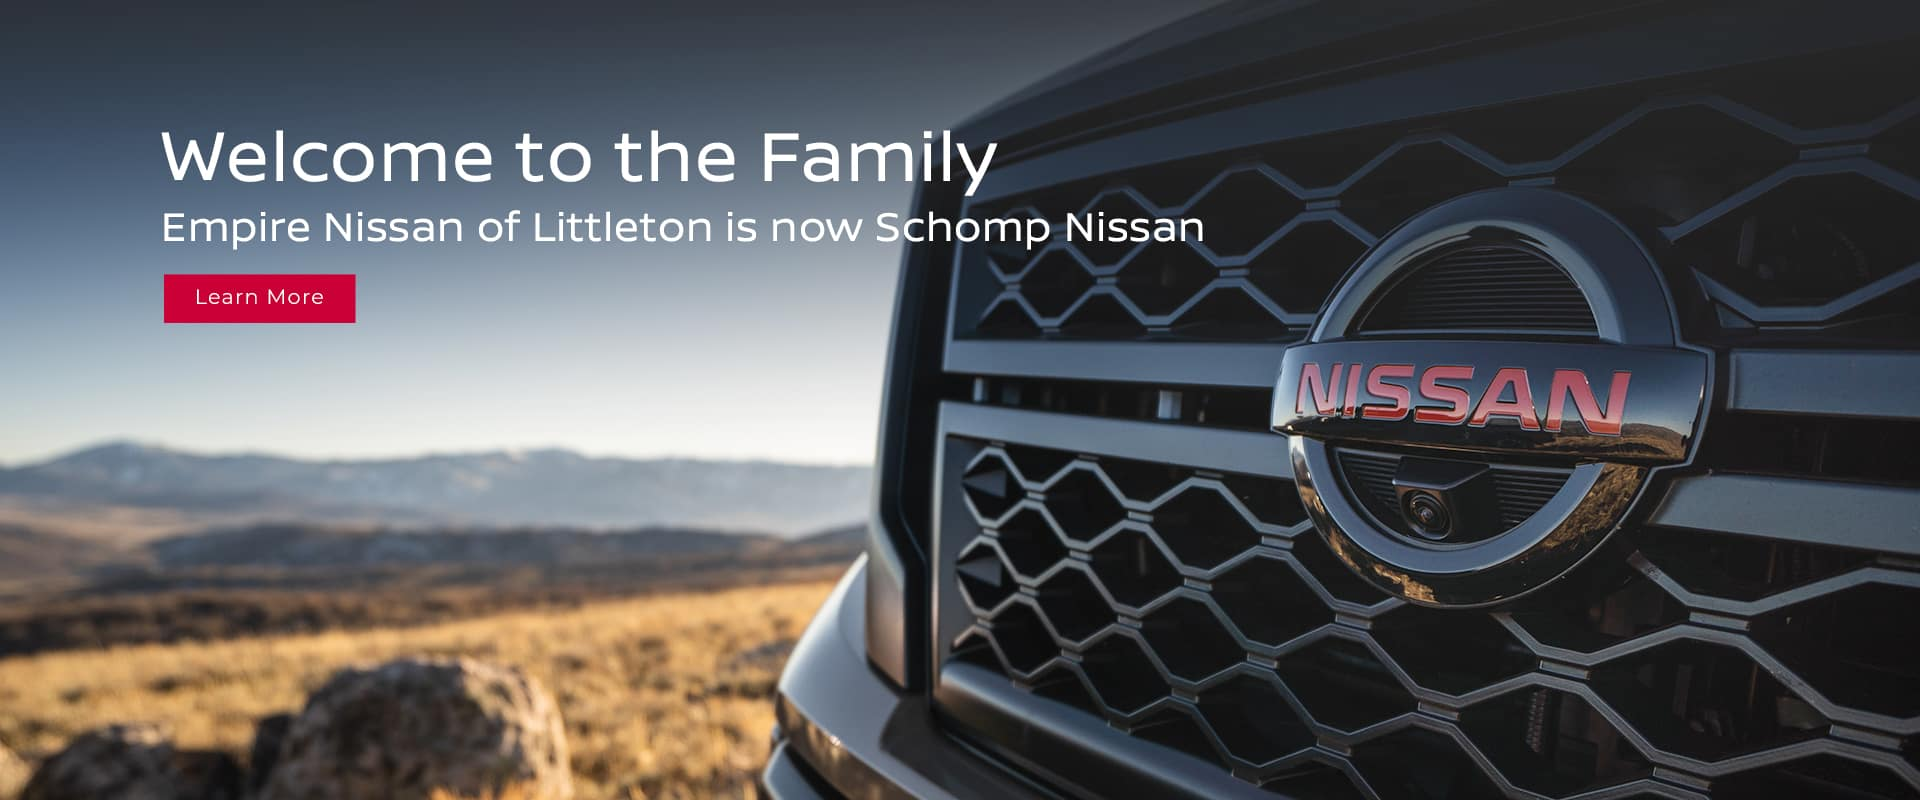 nissan-welcome-family-hbp (2)